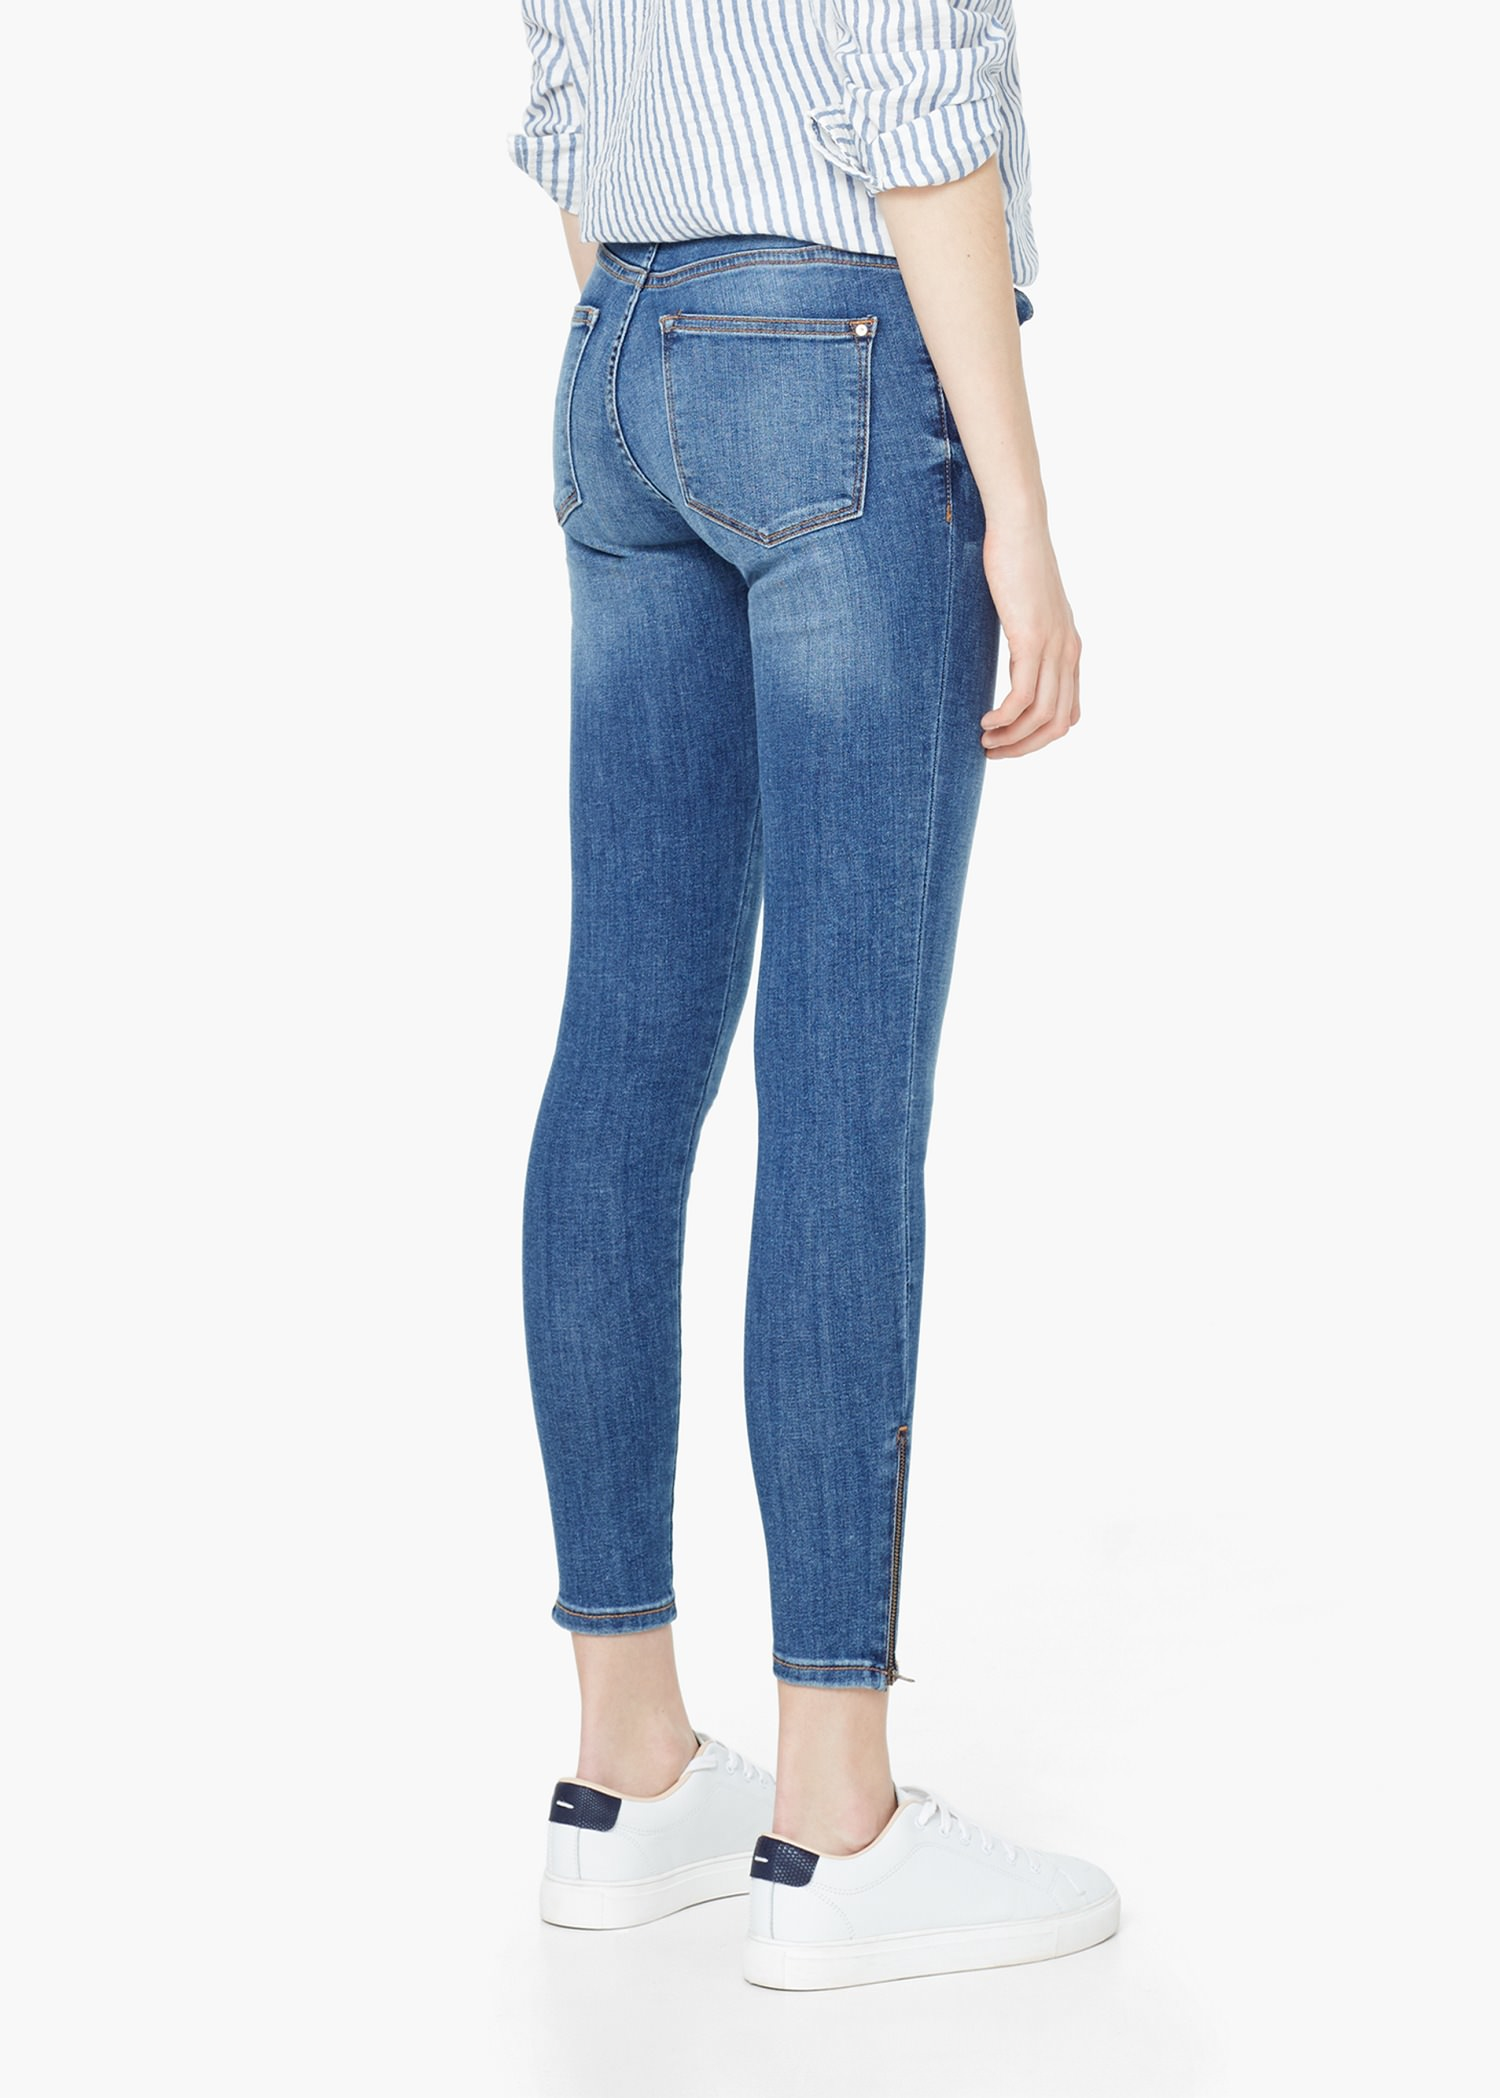 Lyst - Mango Skinny Crop Tattoo Jeans in Blue